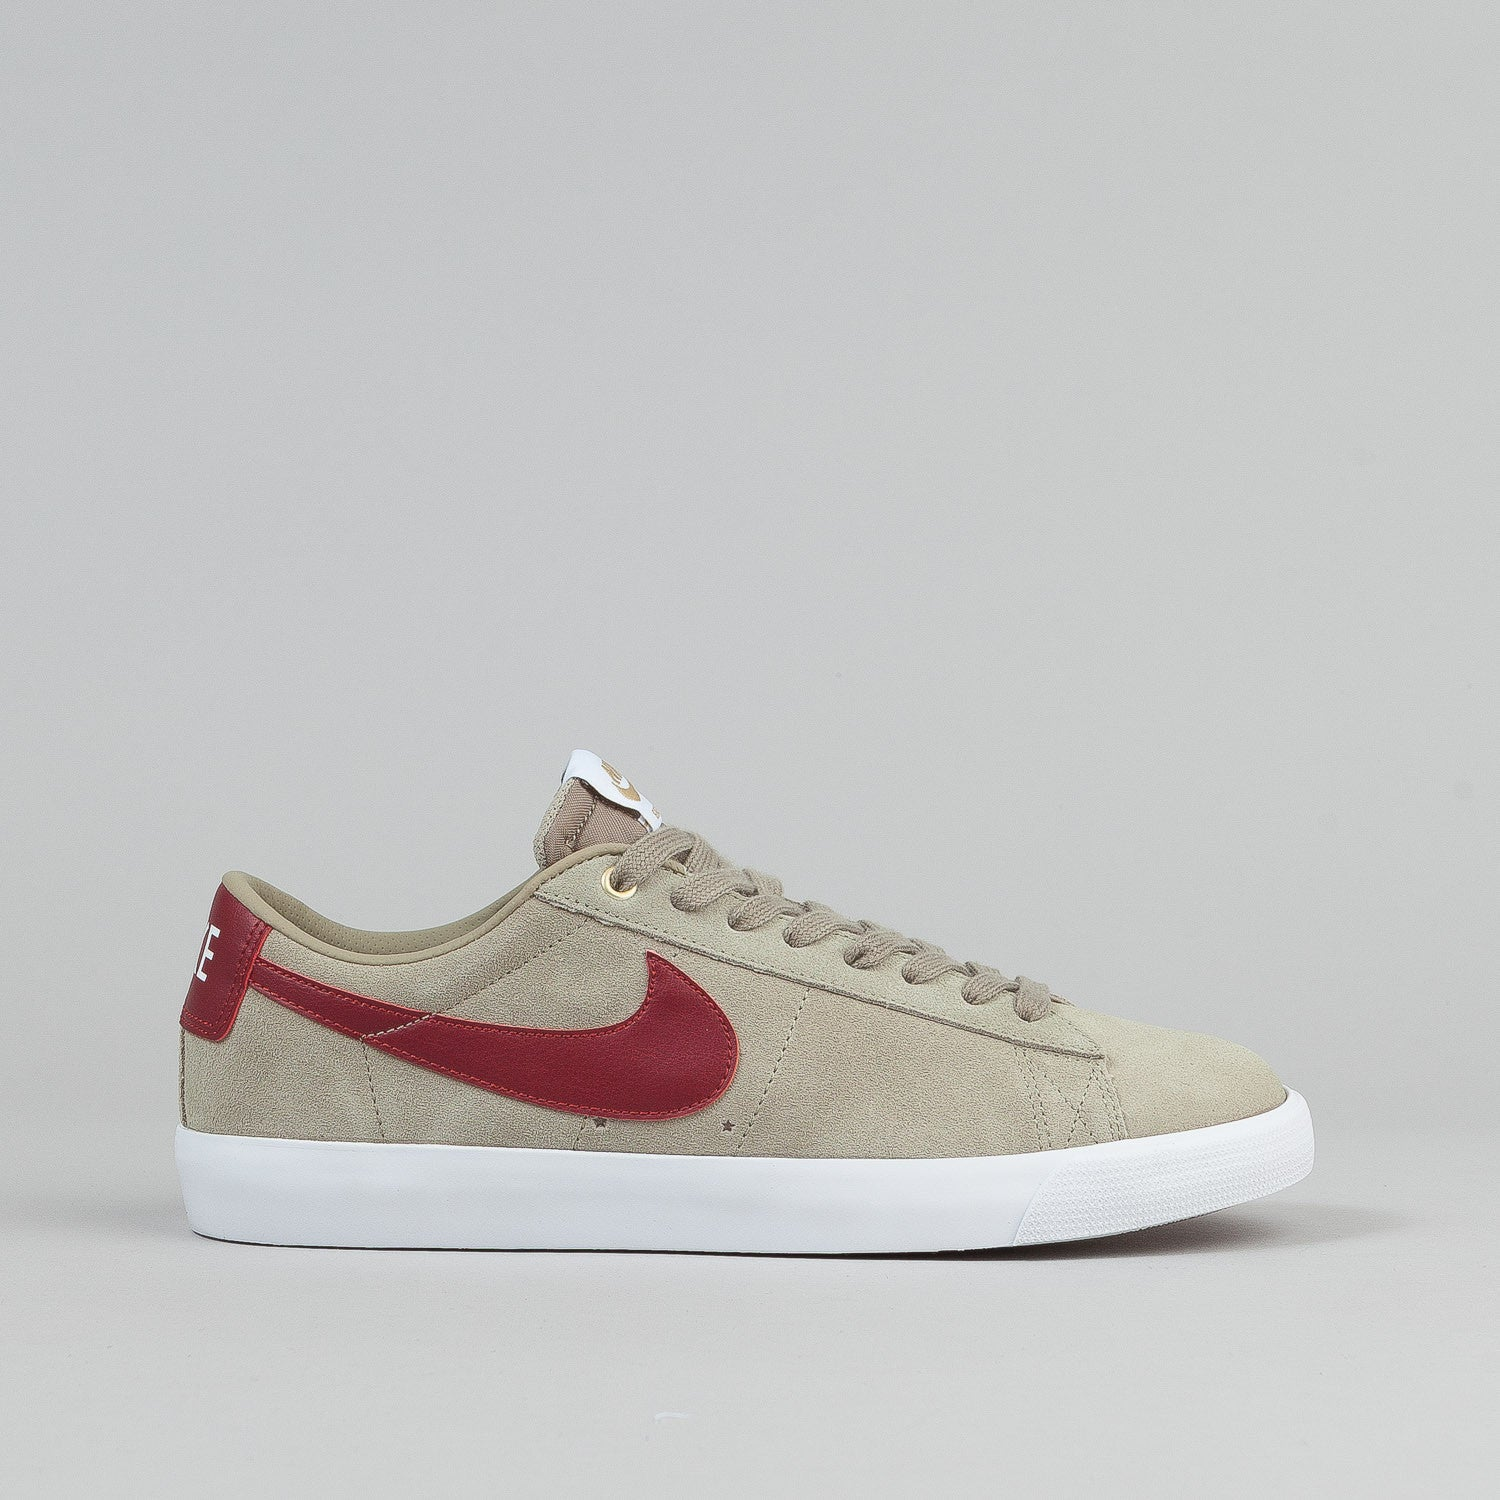 Nike SB Blazer Low GT Shoes